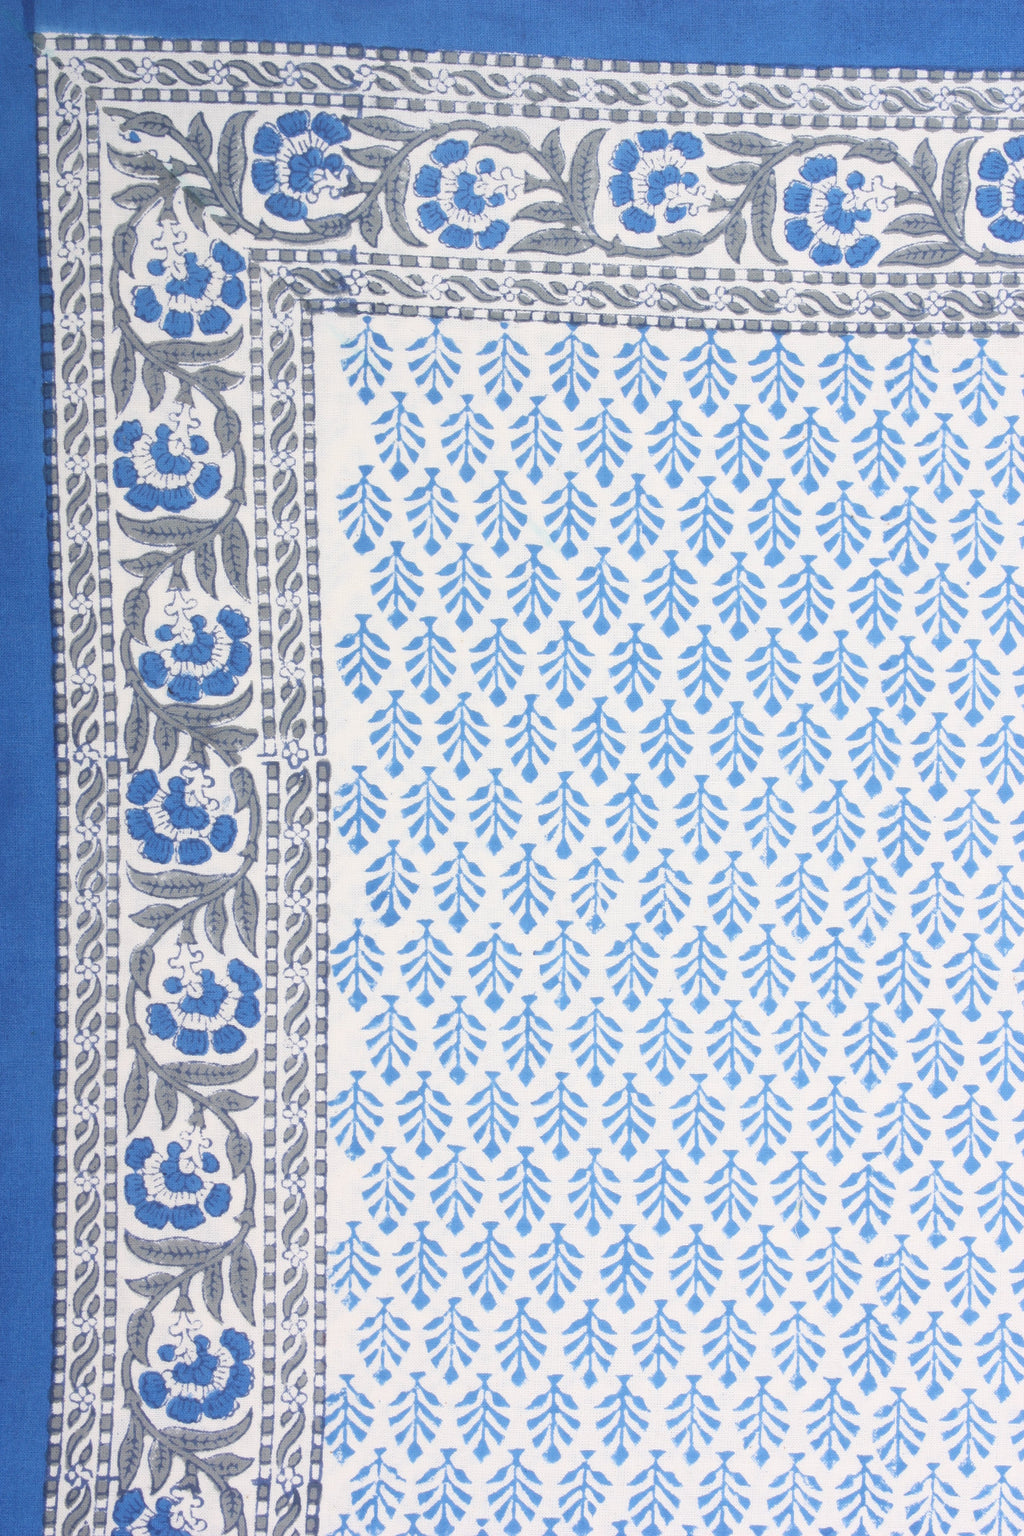 Blue Topiary Tablecloth